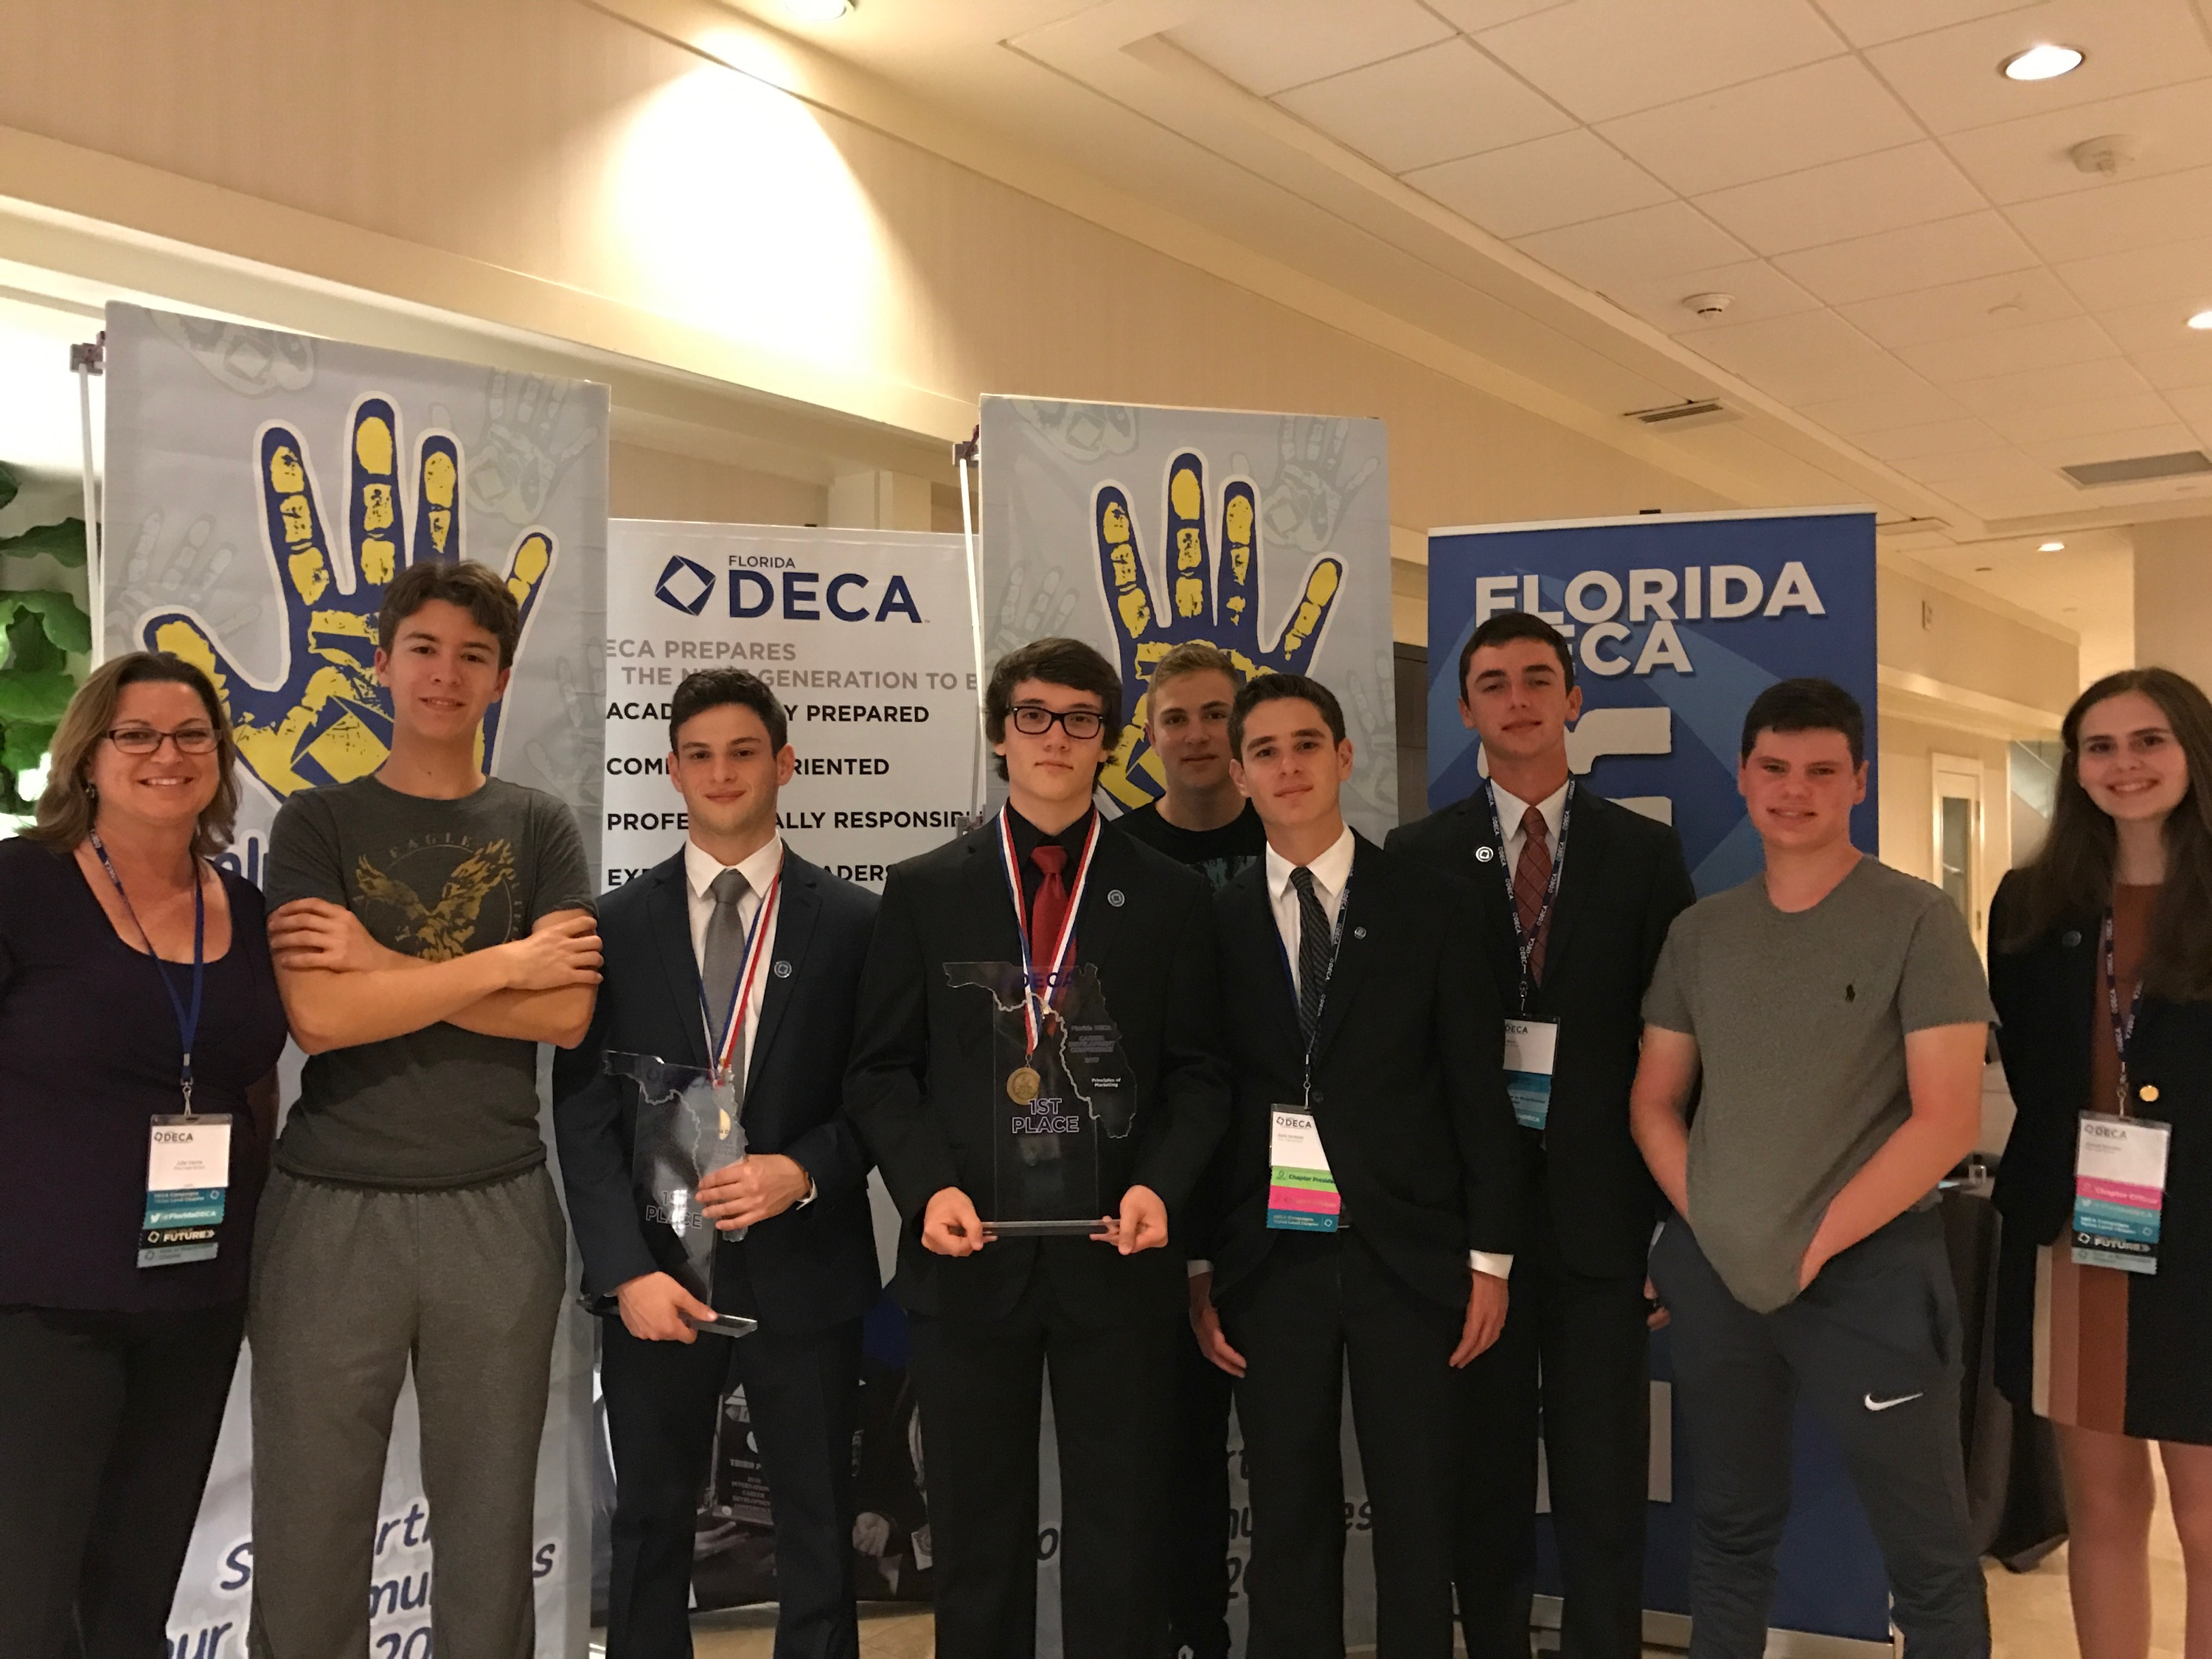 DECA group at a competition